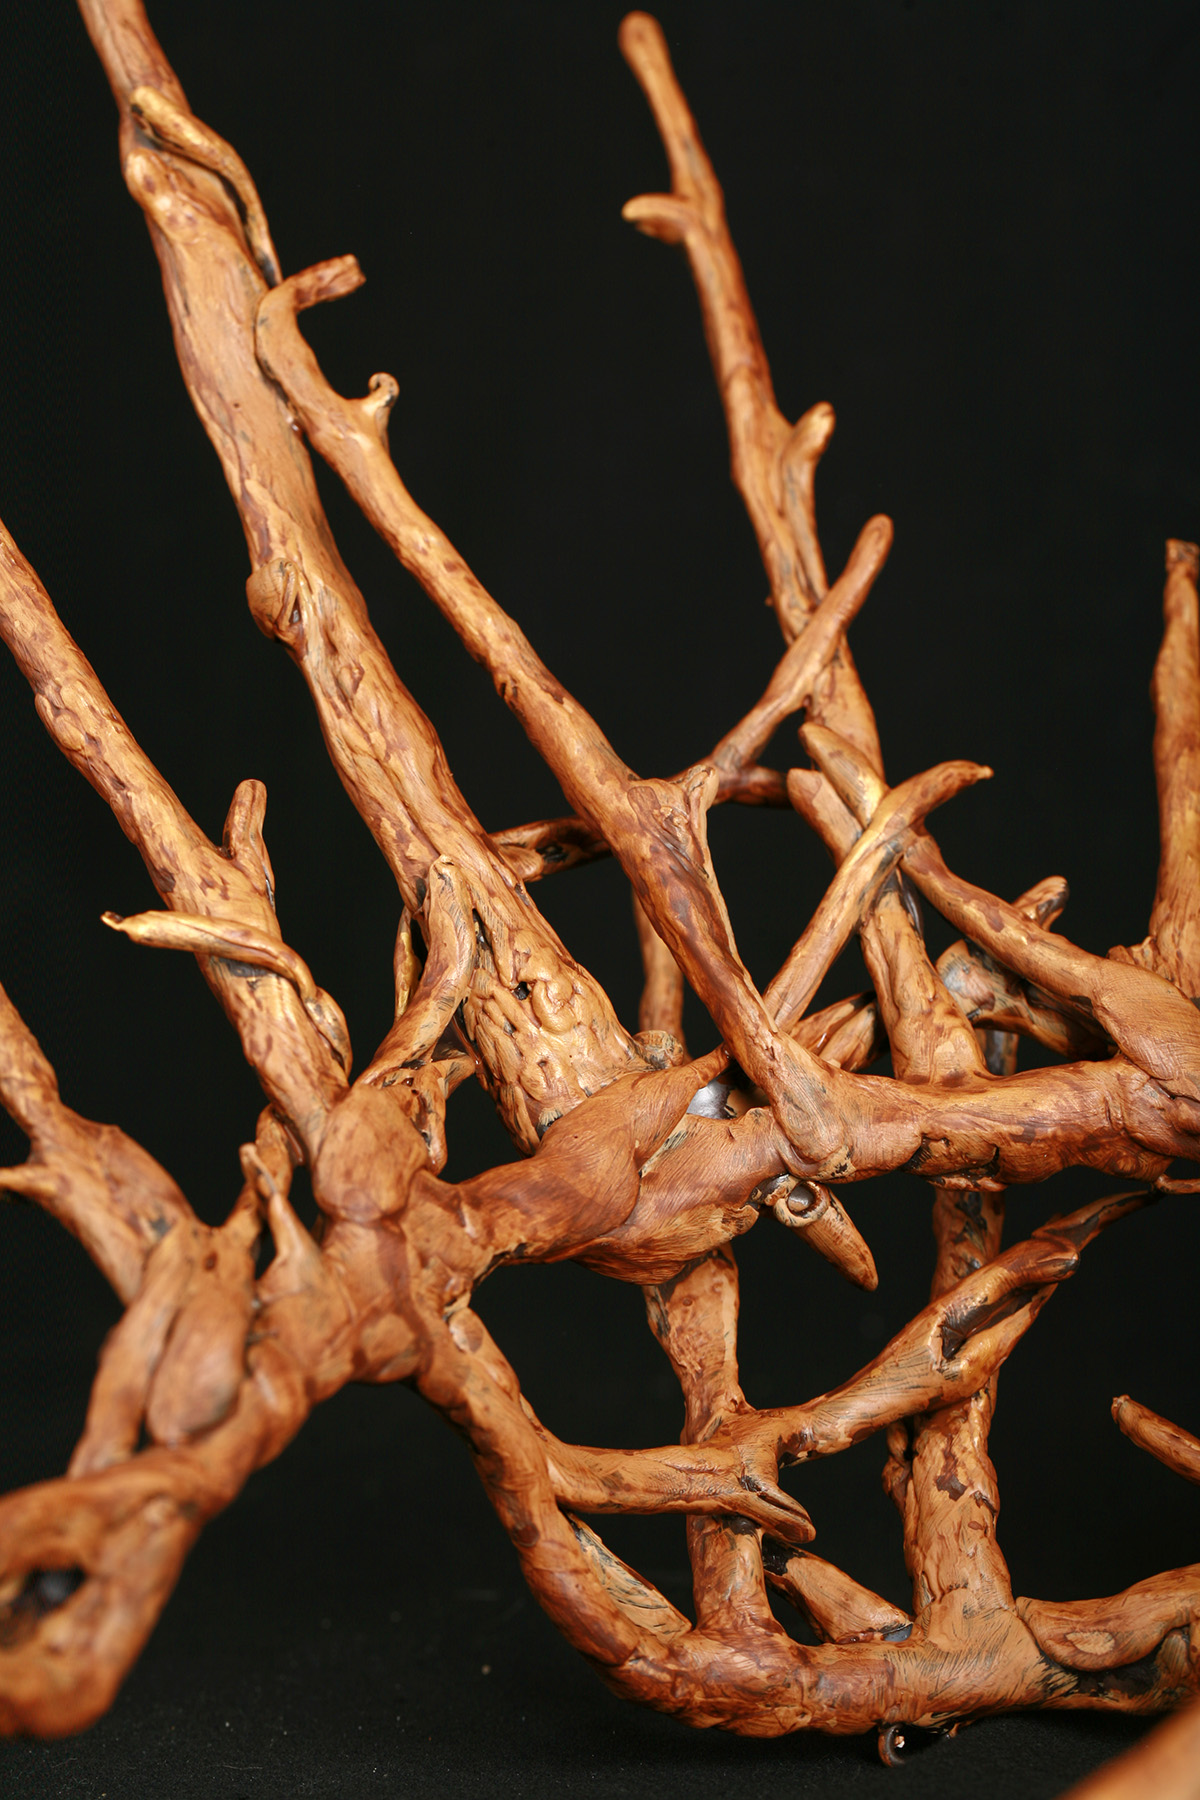 A plastic replica of Thranduil's crown, painted to look realistically like wooden twigs.